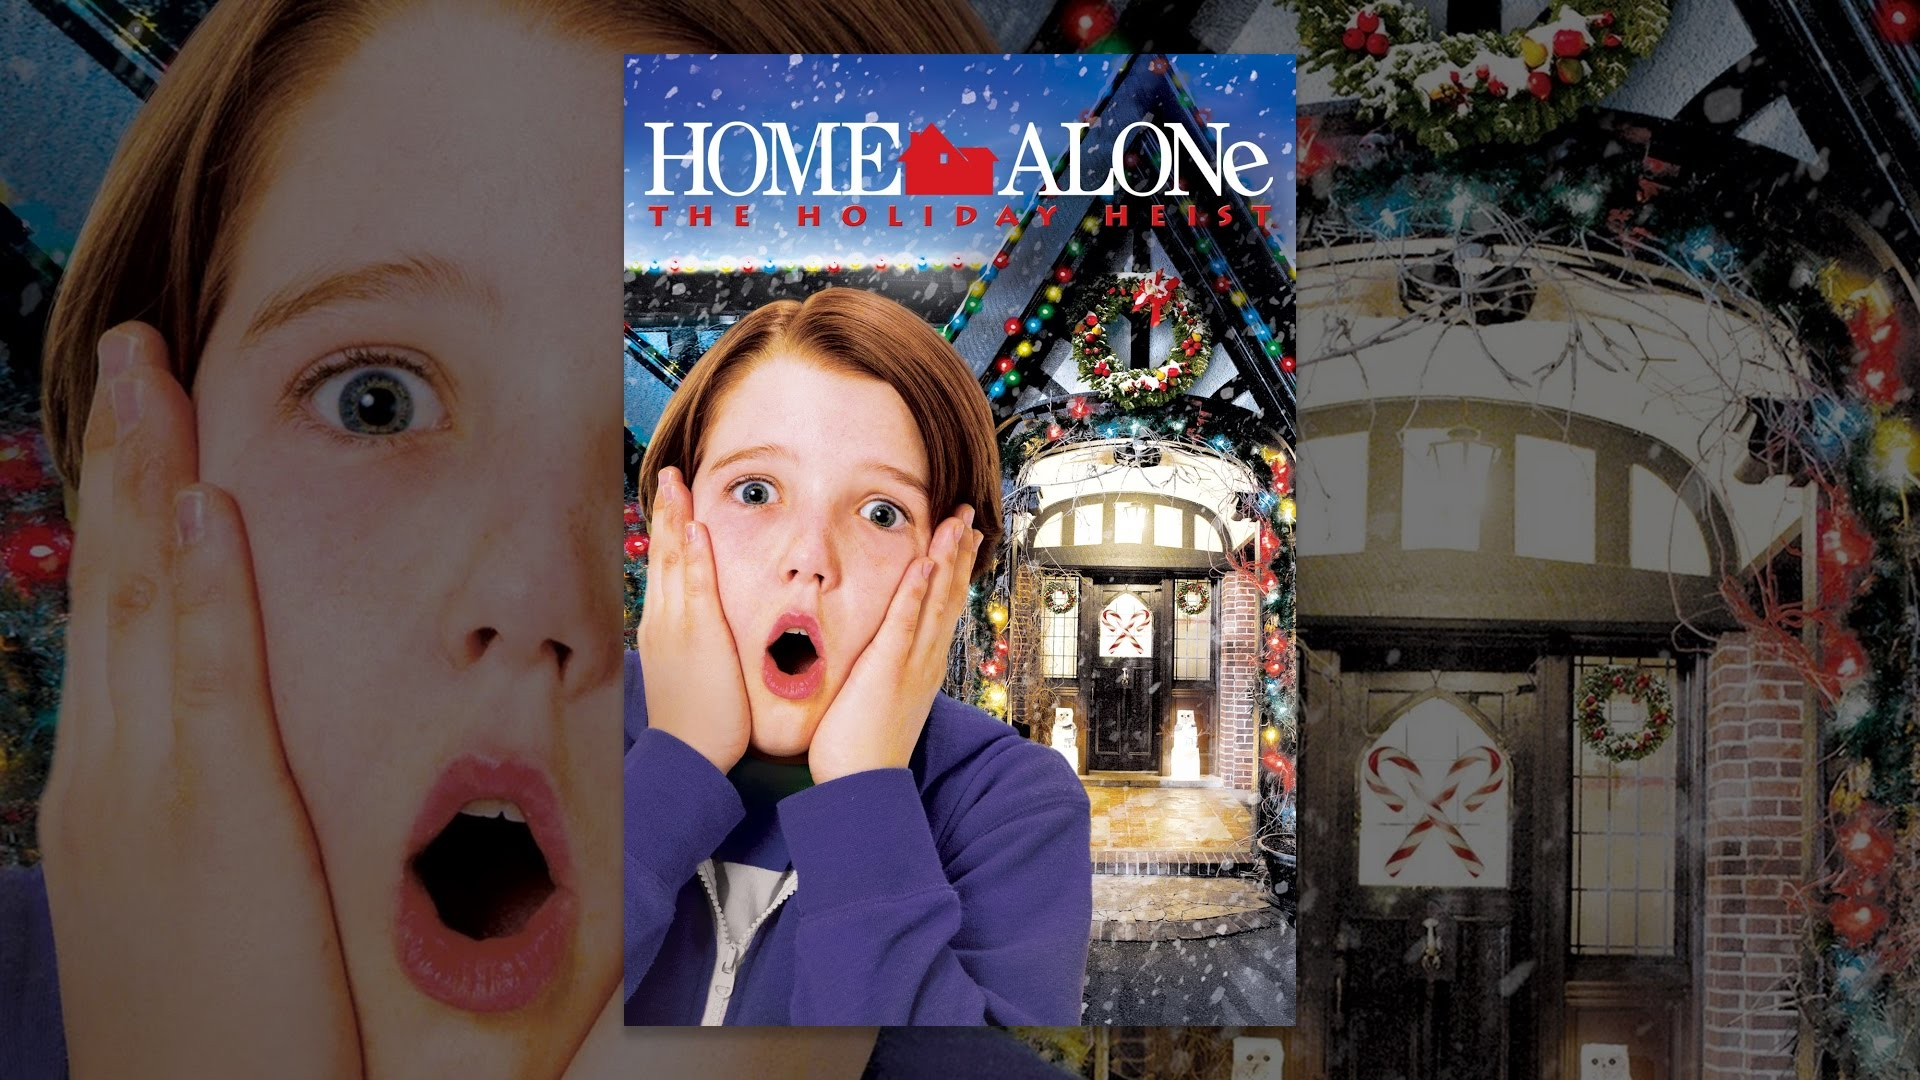 Home Alone 5 The Holiday Heist ficial trailer